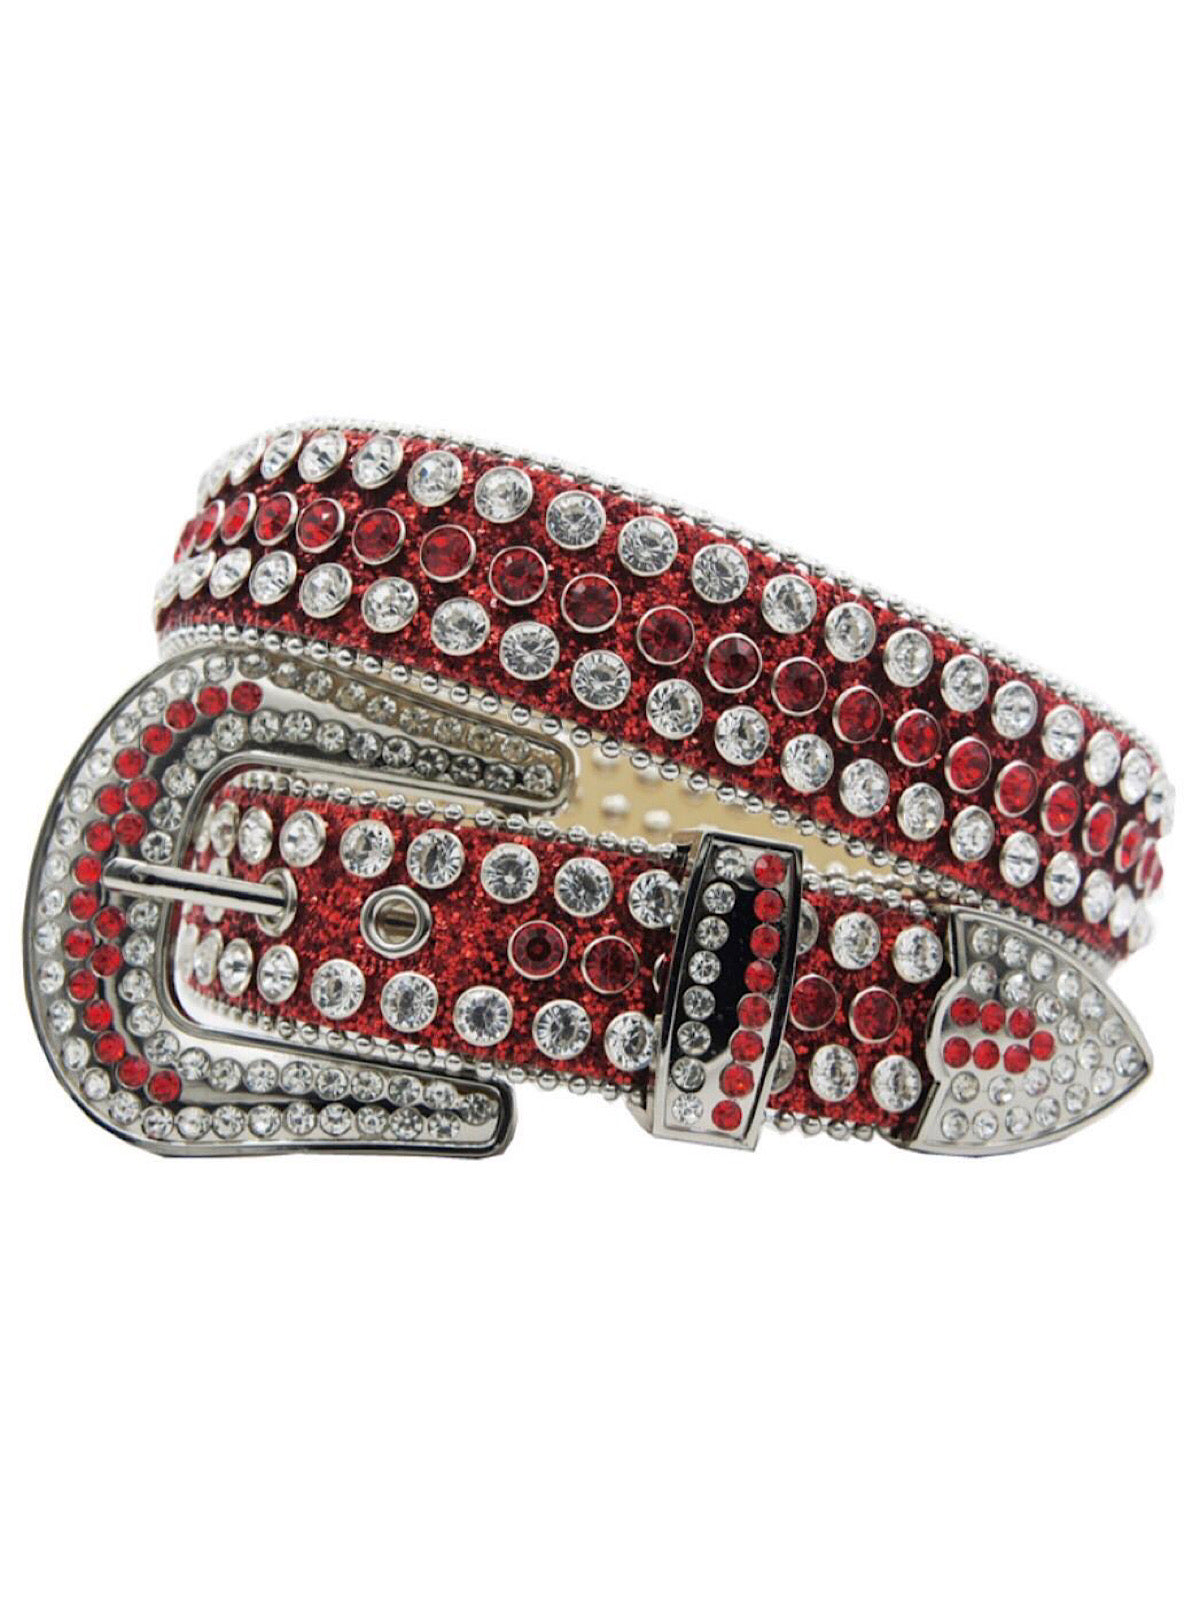 DNA Belt - Shiny Stones - Red with Red/Silver